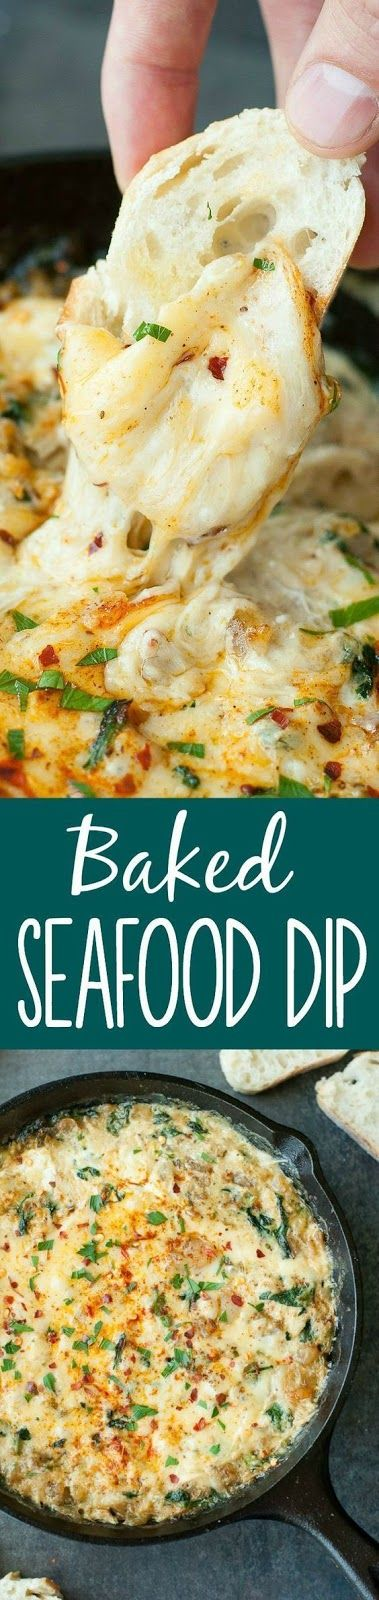 Baked Seafood Dip with Crab, Shrimp, and Veggies! | Food And Cake Recipes